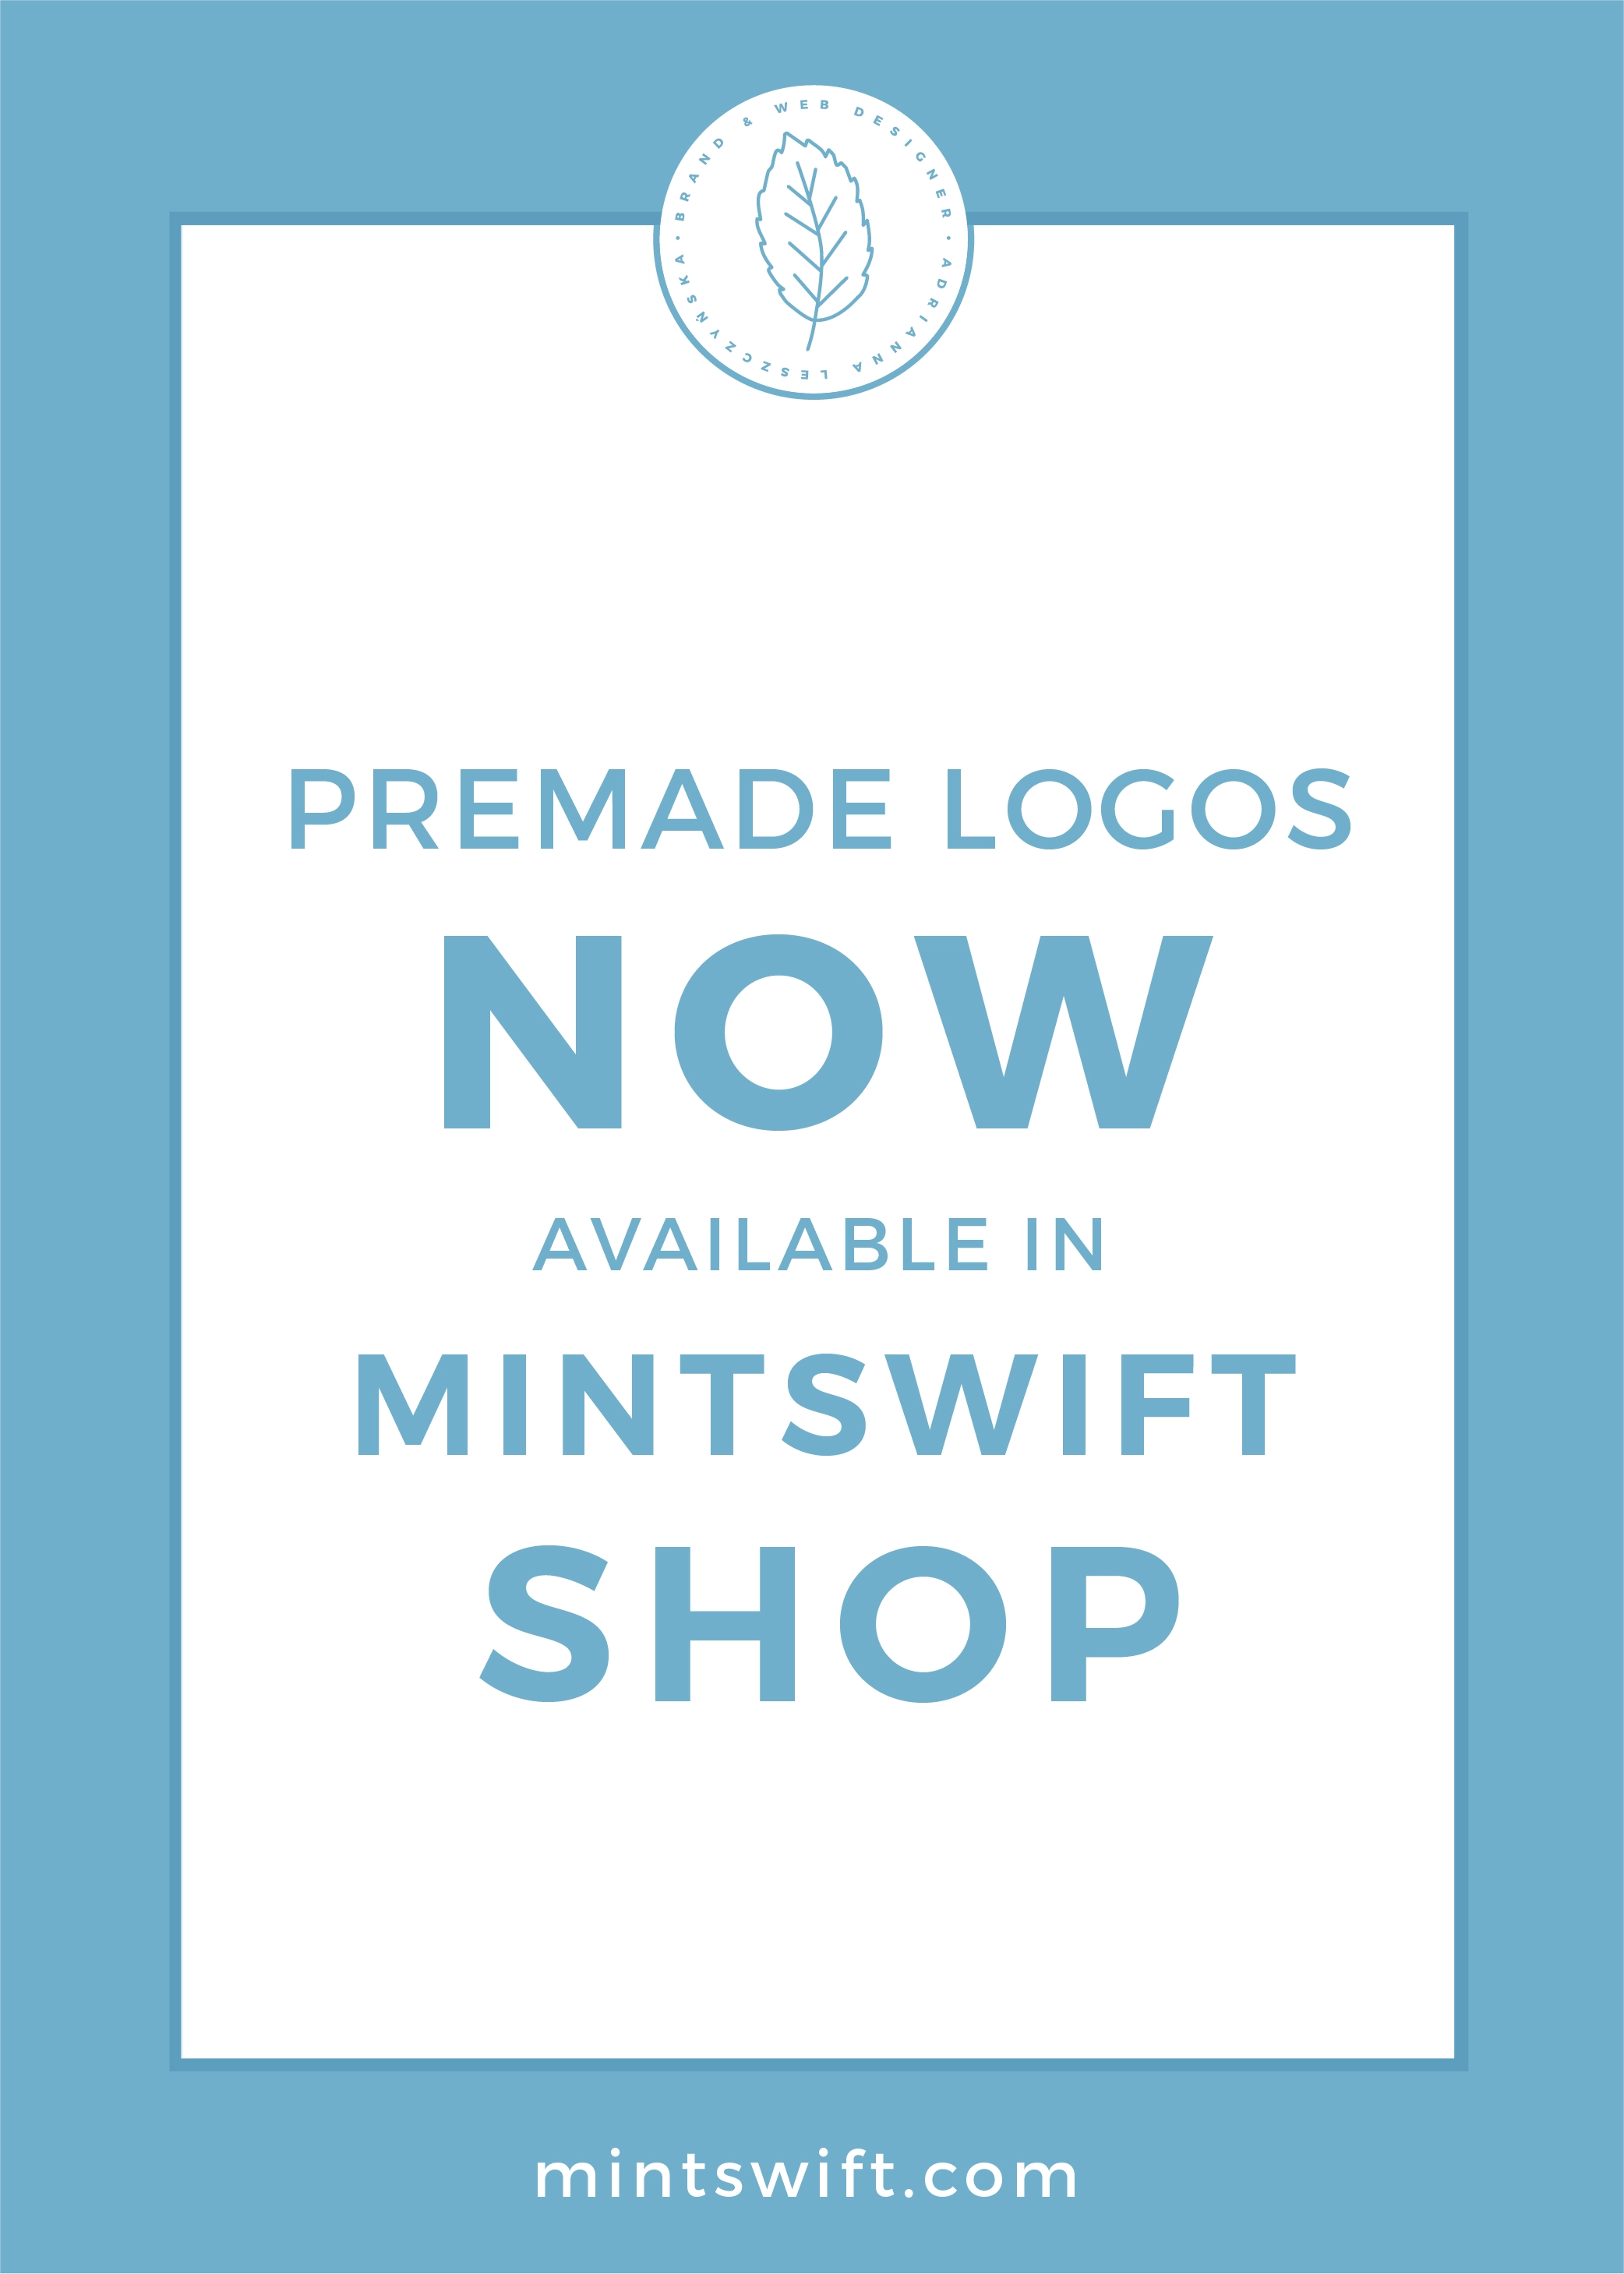 Premade Logos Now Available in MintSwift Shop by MintSwift